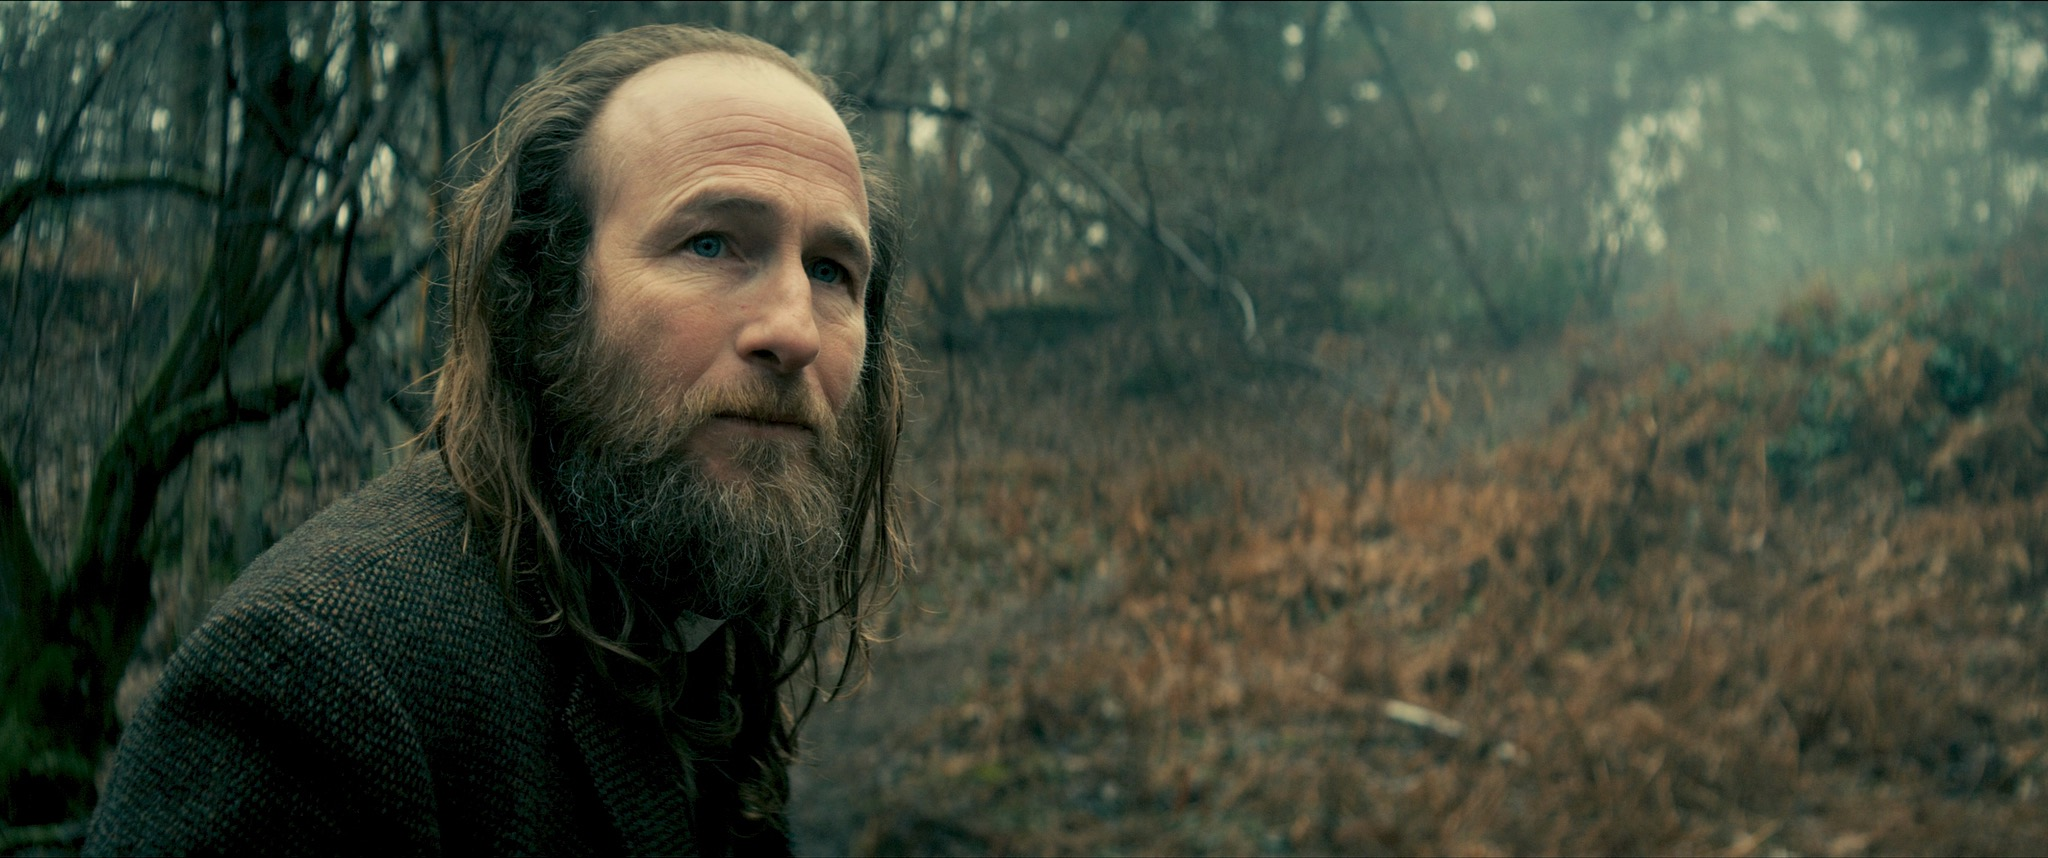 BW 1 high res still 32 PAUL KAYE